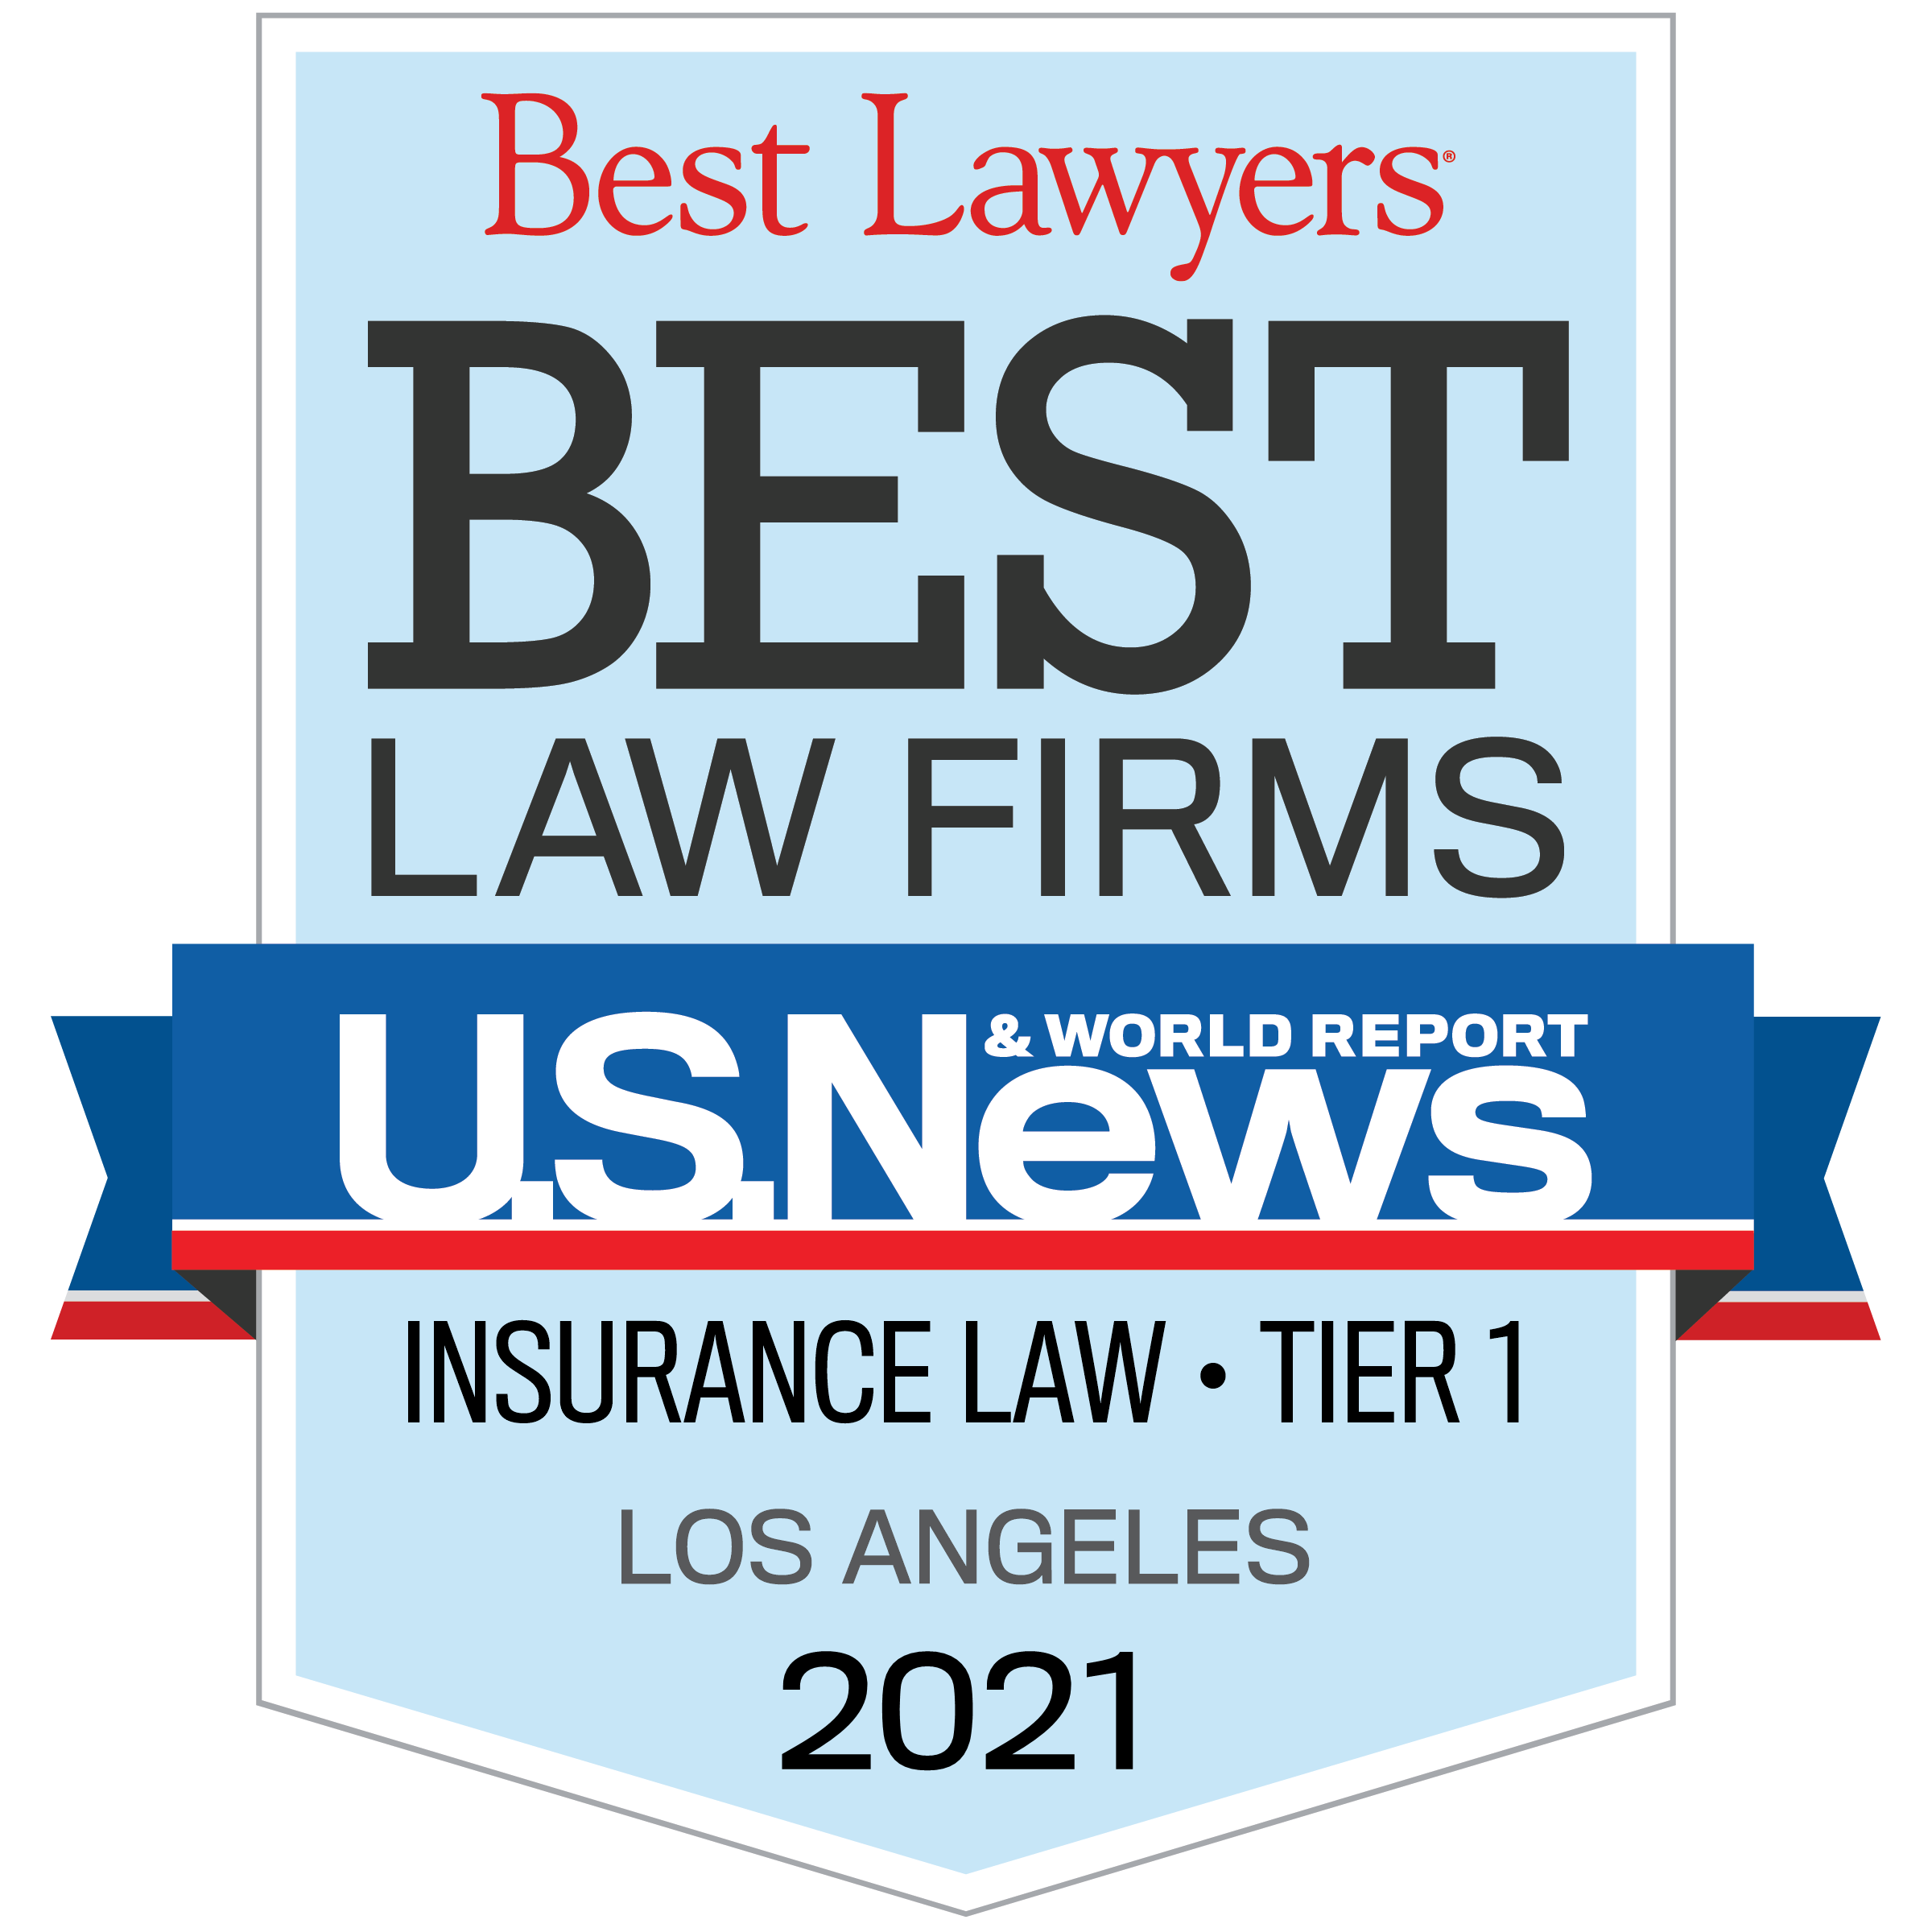 Best Law Firms by US News & World Report - Insurance Law Tier 1 - Los Angeles 2021